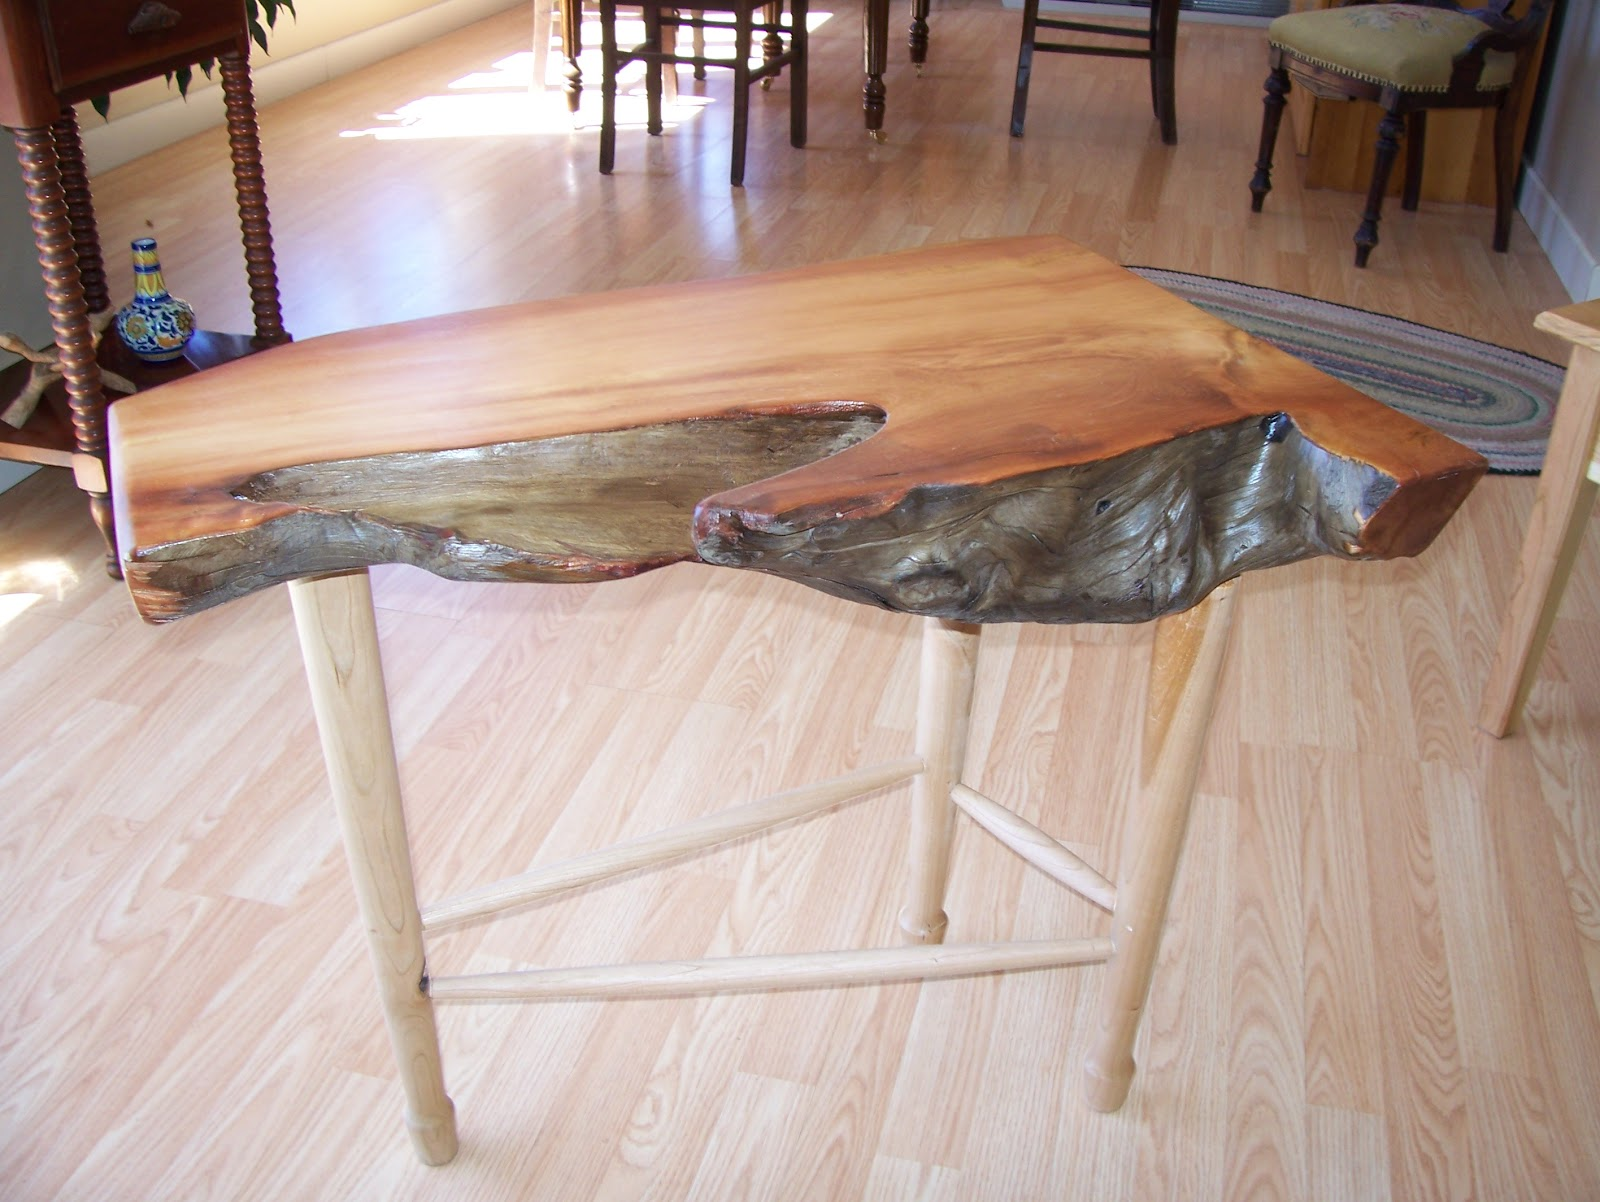 Peter ripple custom furniture driftwood tables for How to work with driftwood